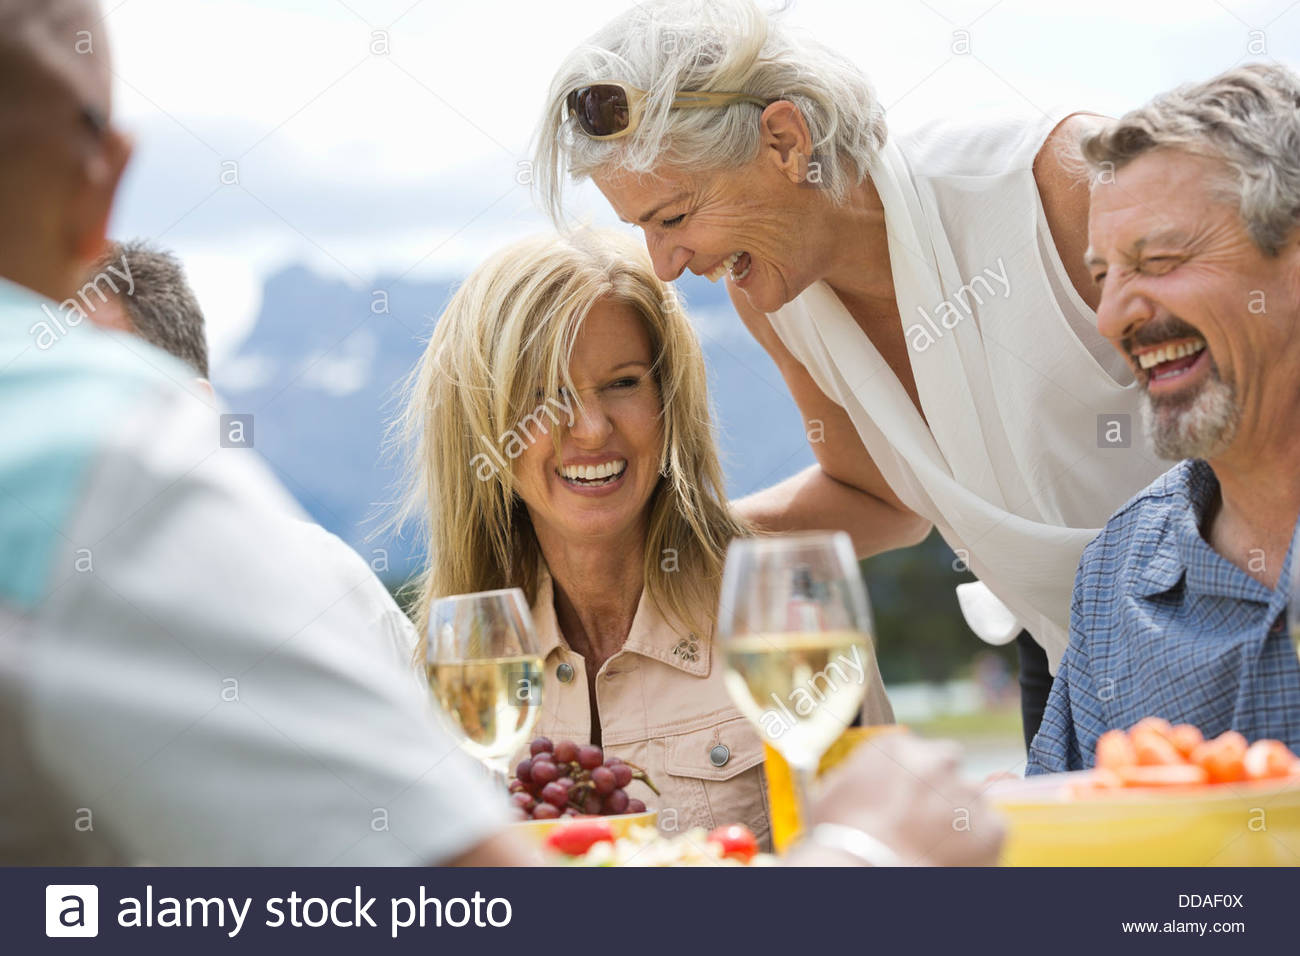 Young woman laughing with friends Photo Stock